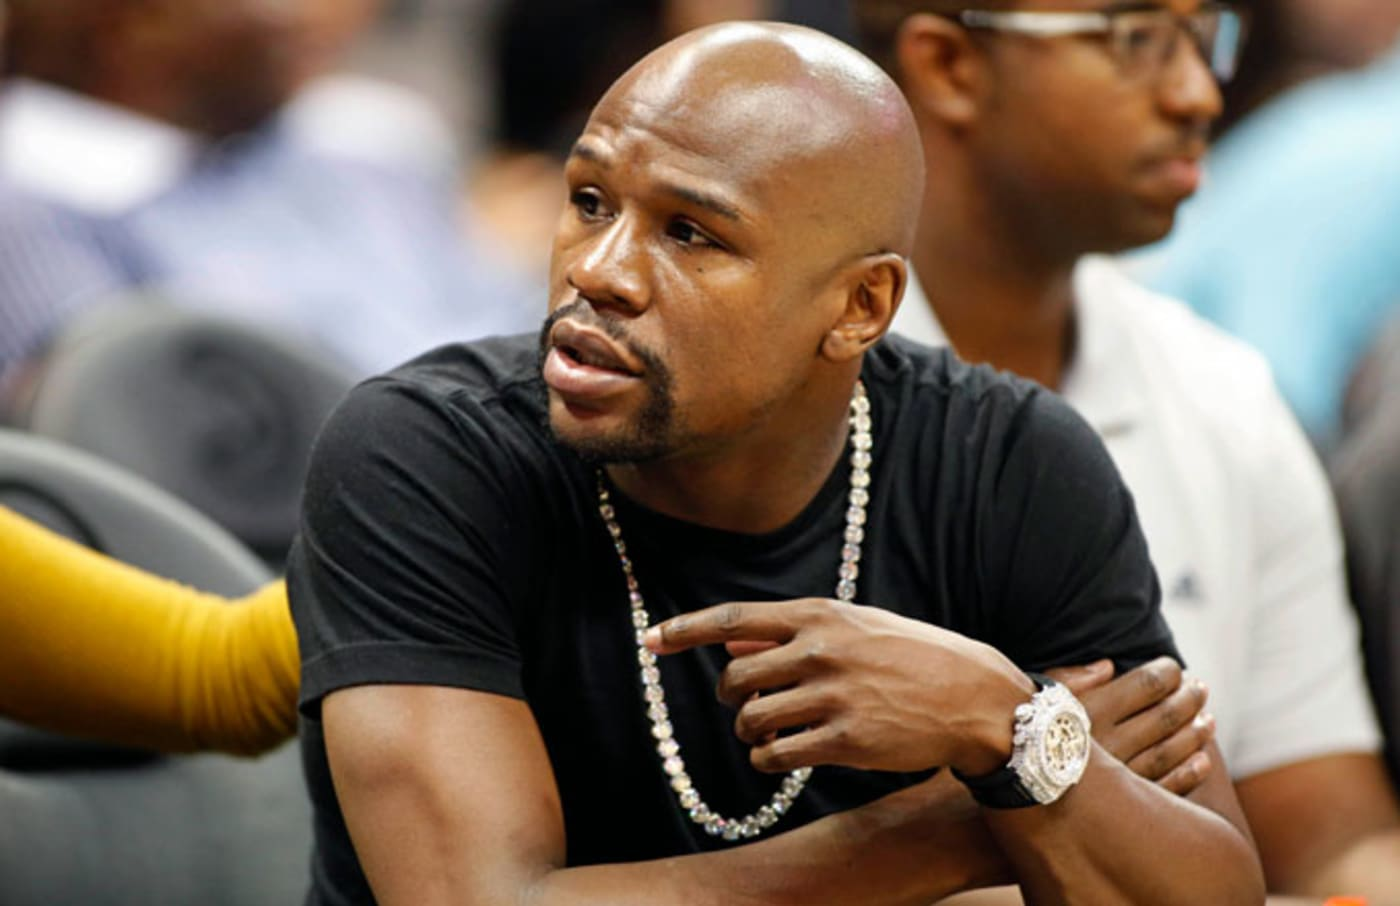 Floyd Mayweather attends an NBA game.